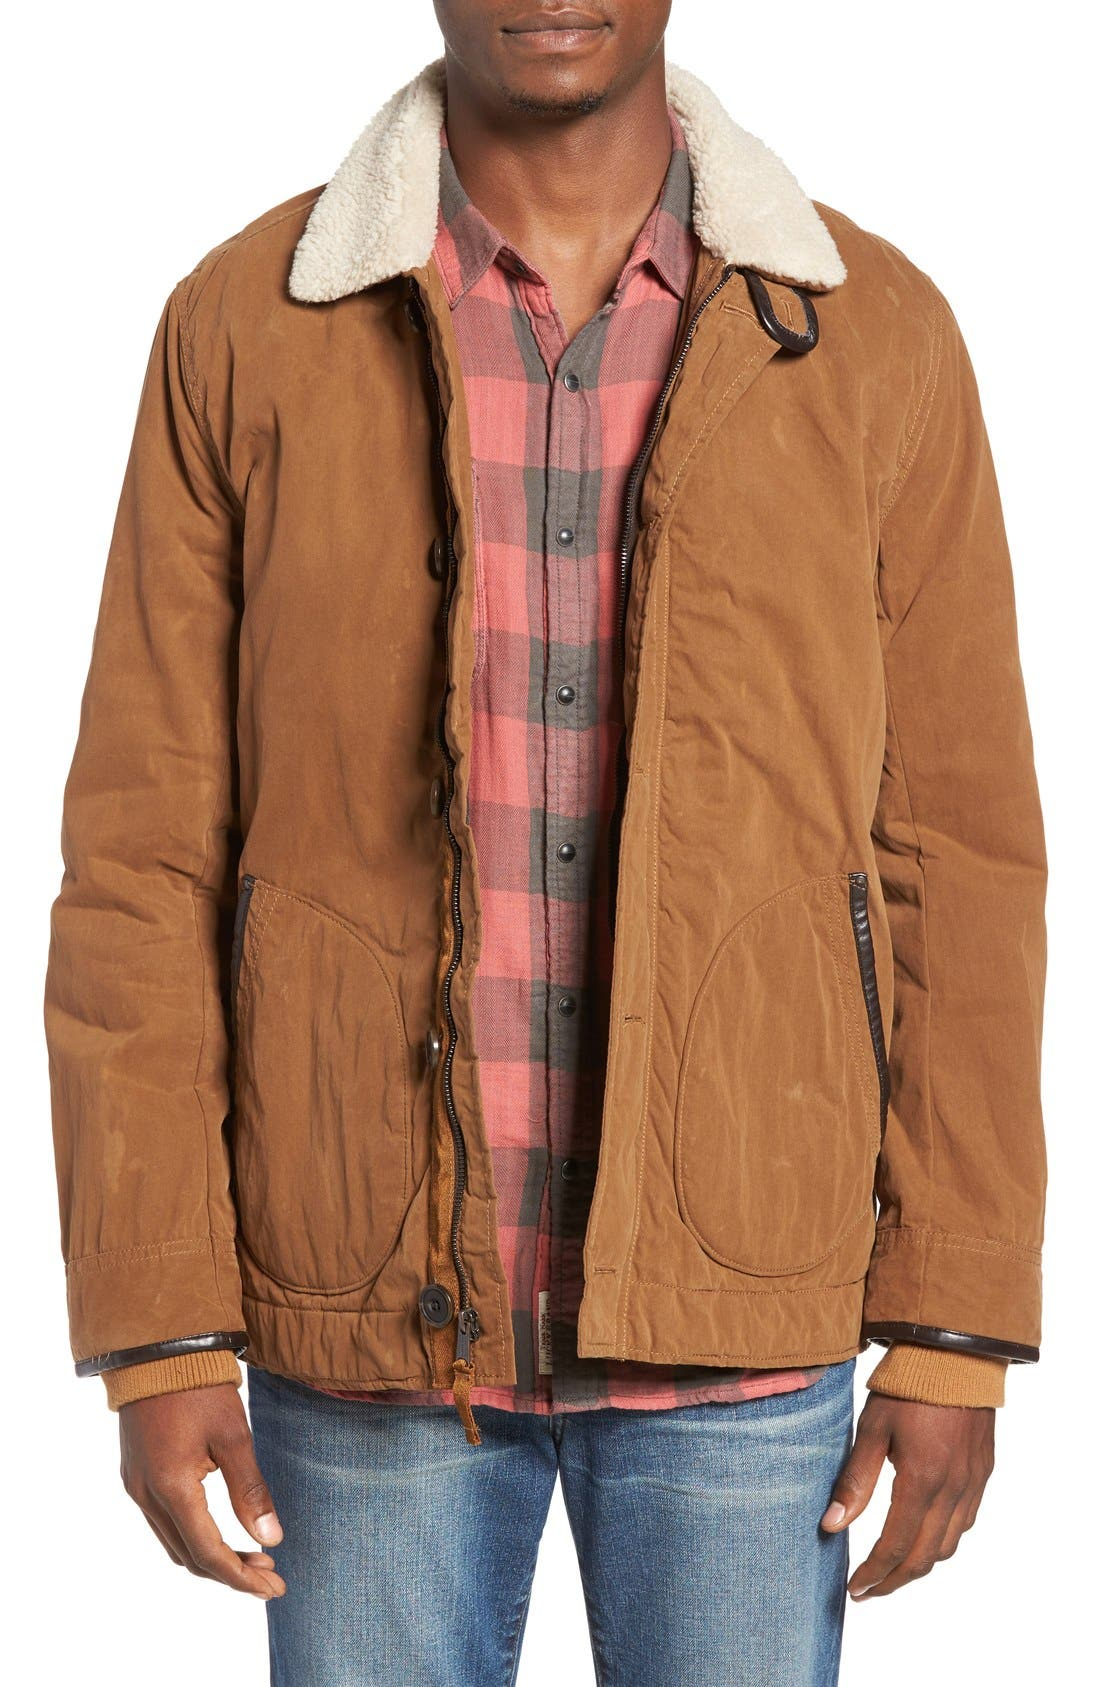 Alternate Image 1 Selected - Lucky Brand Deck Jacket